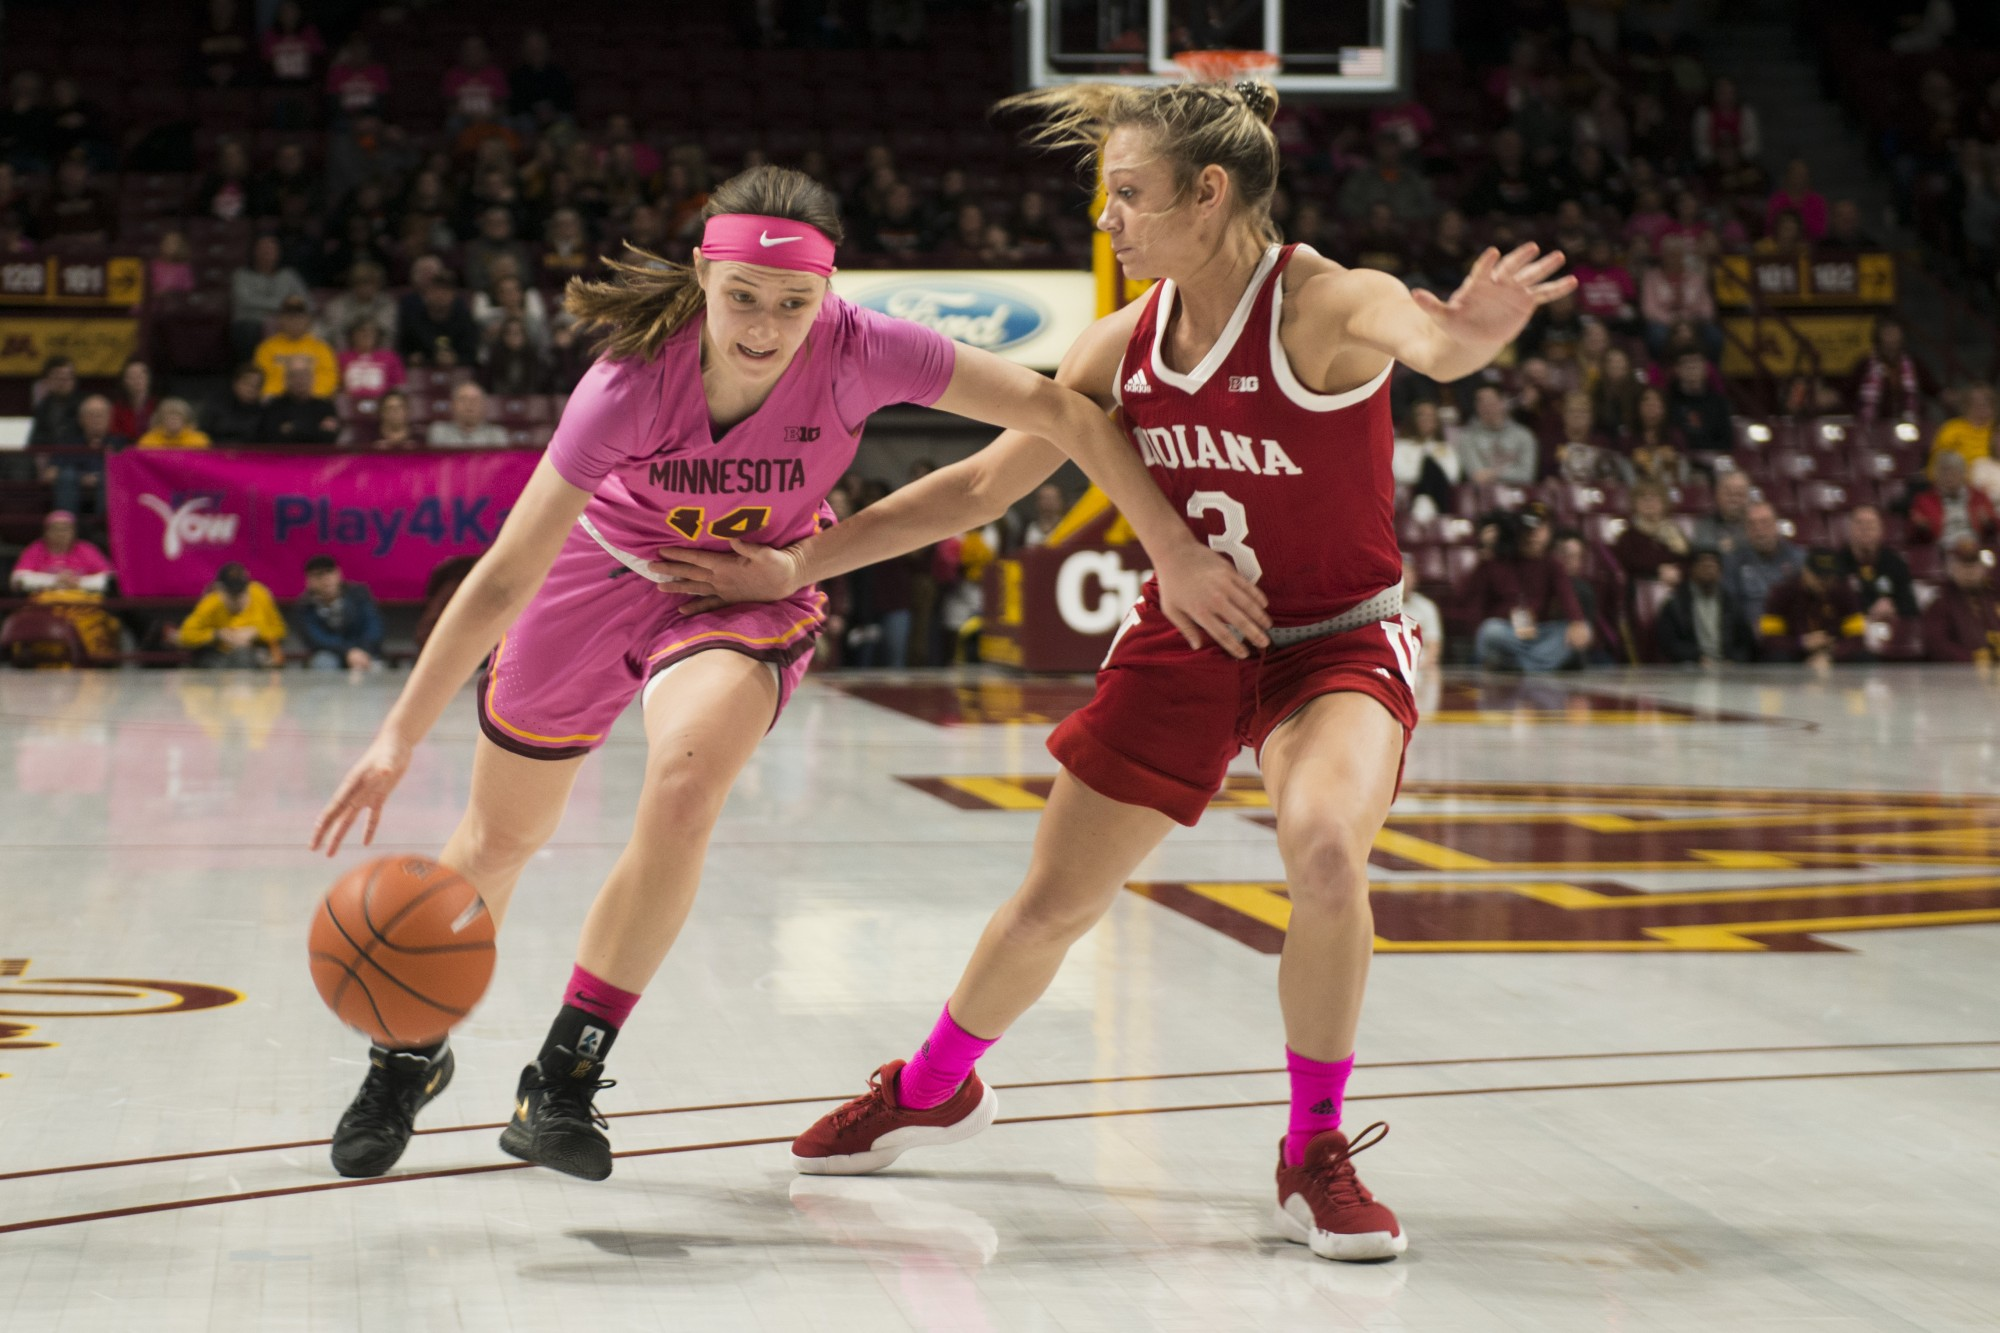 Guard Sara Scalia drives towards the basket in the second quarter of the Gophers' 75-69 loss to Indiana 75-69 at Williams Arena on Saturday, Feb. 22.